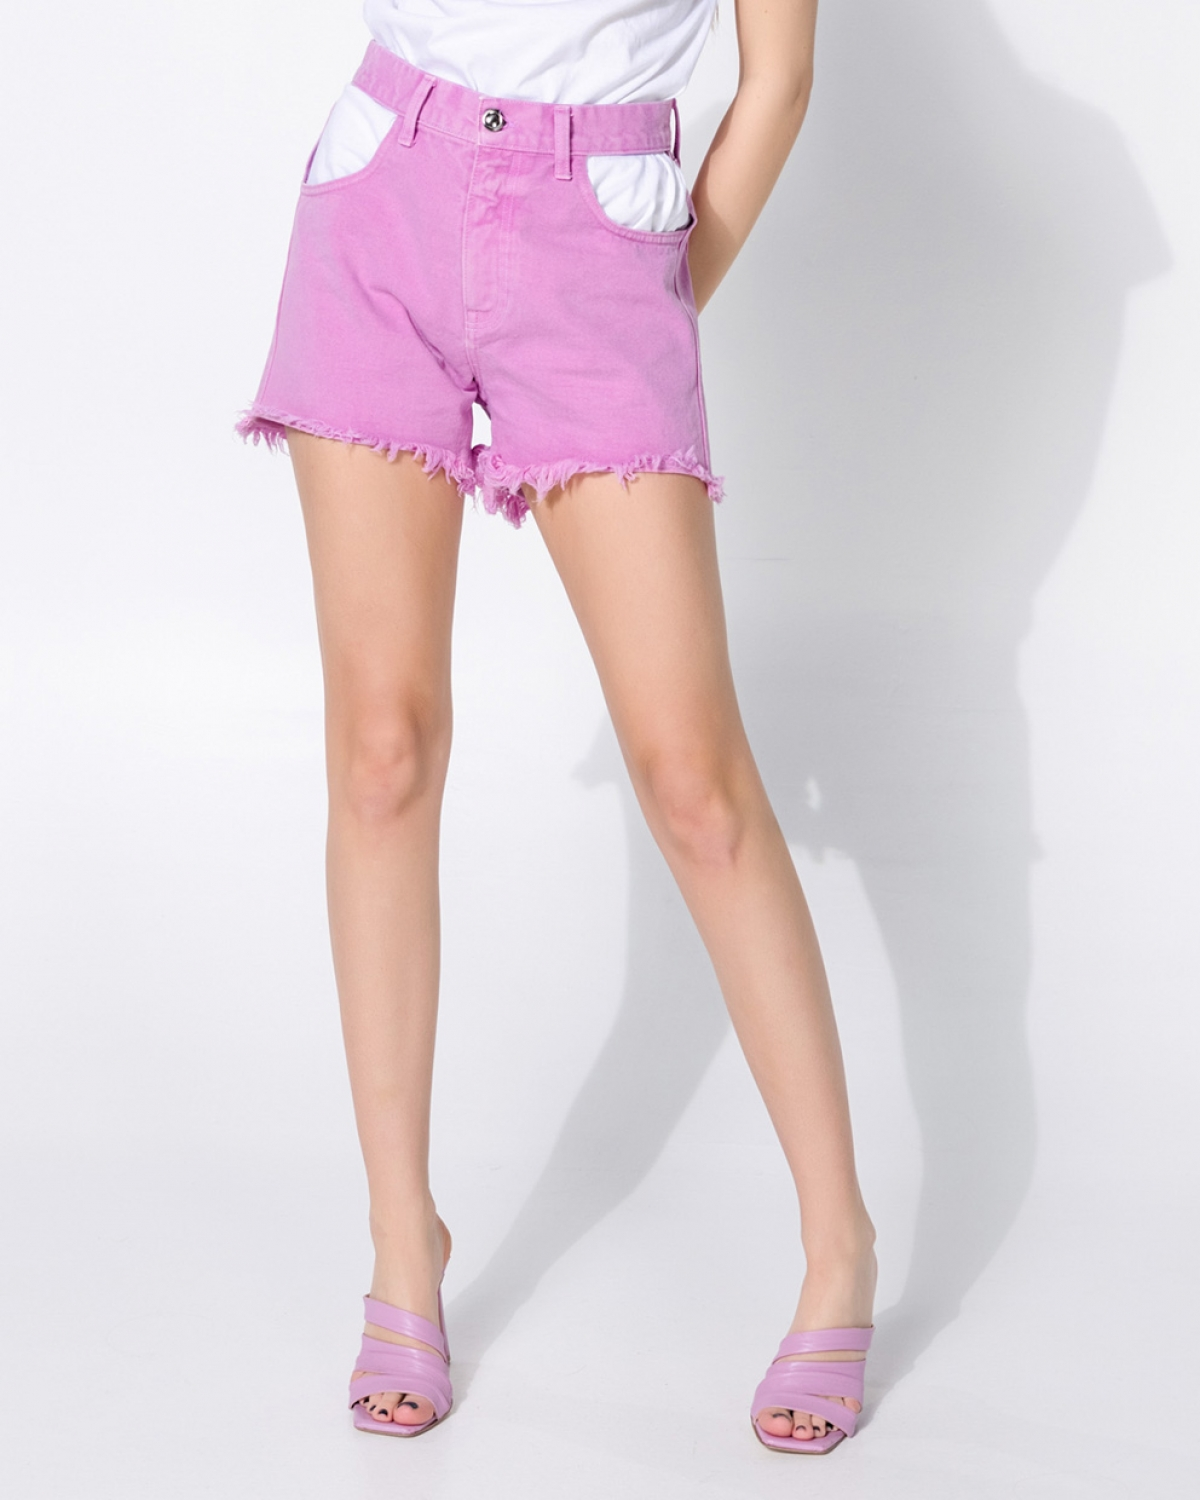 Jean Pink Shorts With Gaps